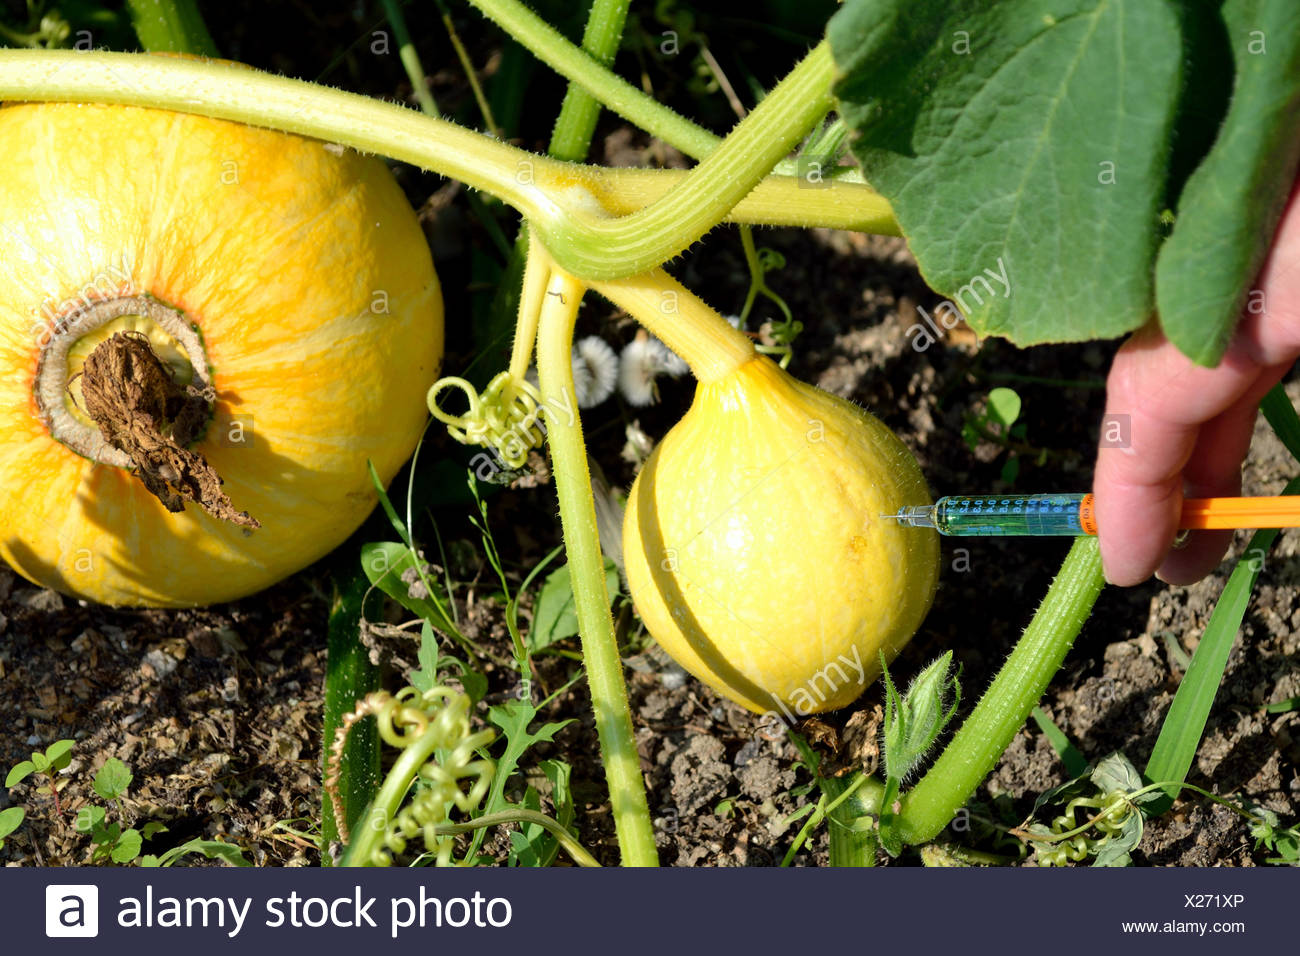 Genetic manipulation of vegetables - Stock Image